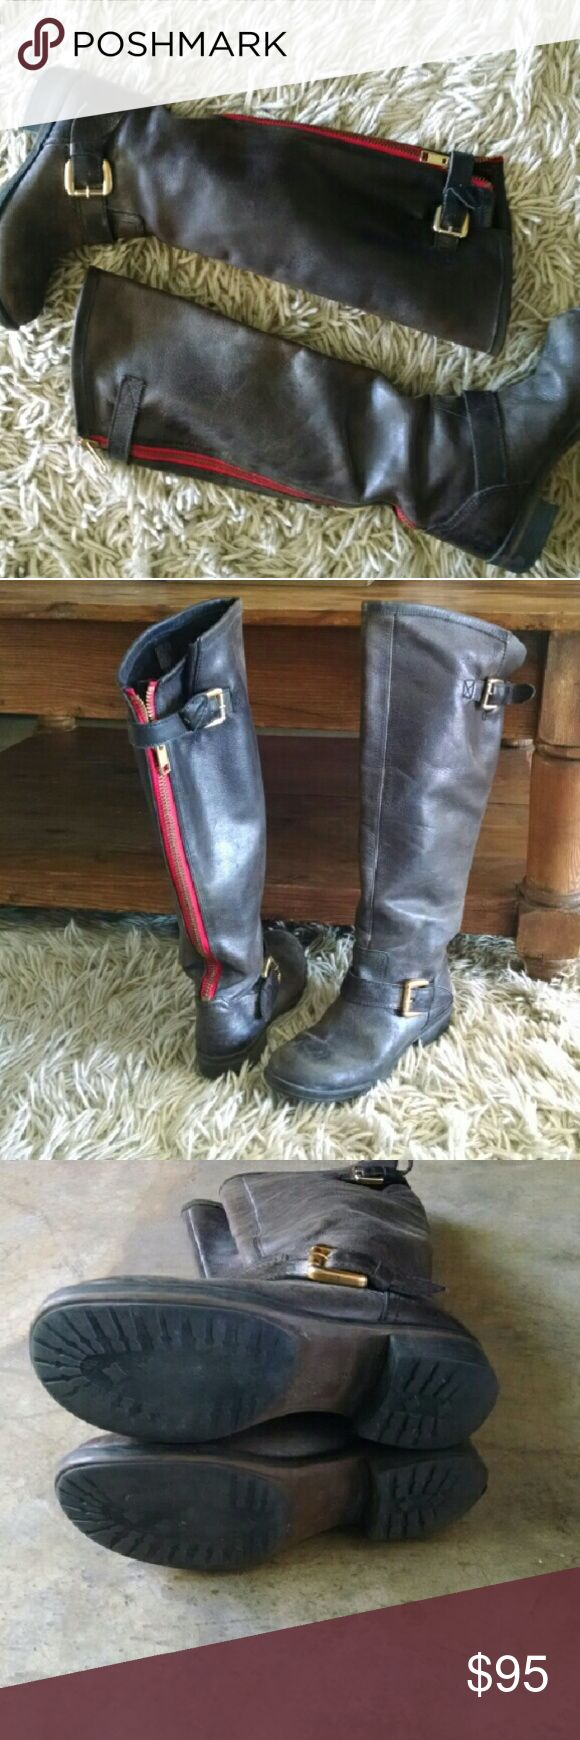 """🍄 SALE 🍄 Steve Madden Tall Boots sale Steve Madden Tall Knee High Boots Size 6 coolest military combat free people vibes with contrasting back red trim zip up the back. Lightweight. Comfortable low approx 1"""" heel. Shaft height approx 15"""" No try ons as they are too small for me :( Leather upper and the rest is manmade materials. Great overall preowned condition. Very minor scuffs + scratches on leather. Soles show minor wear but overall great plenty of life left. Great everyday boots…"""